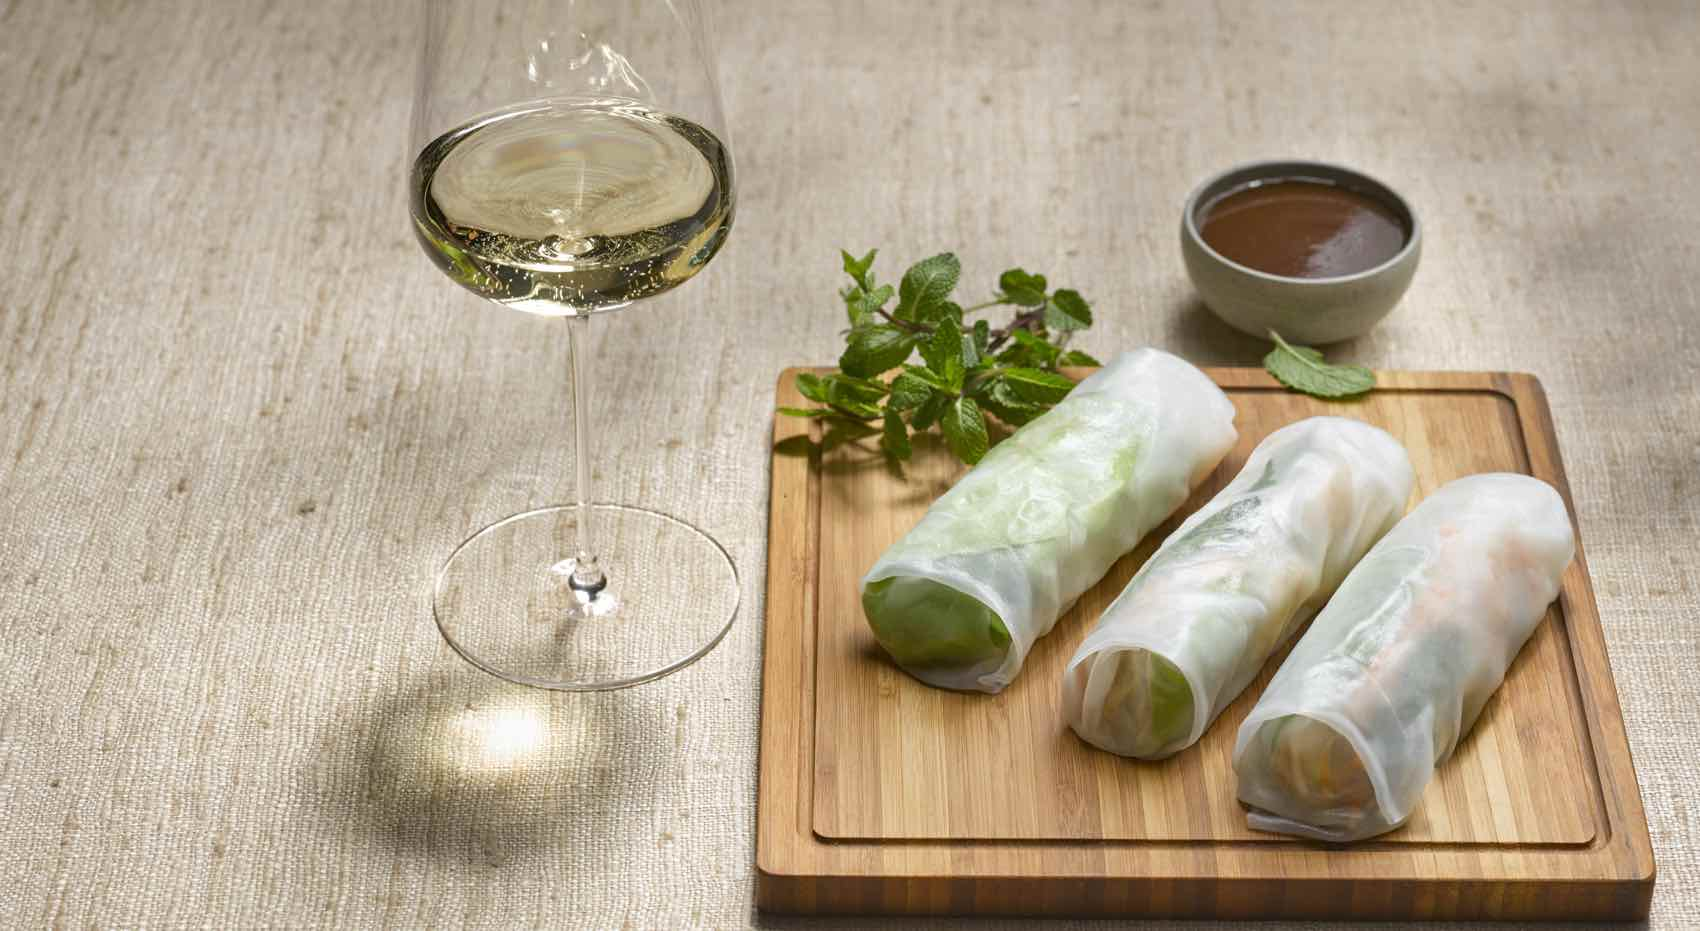 Asian food such as Springroll match white wine from Austria